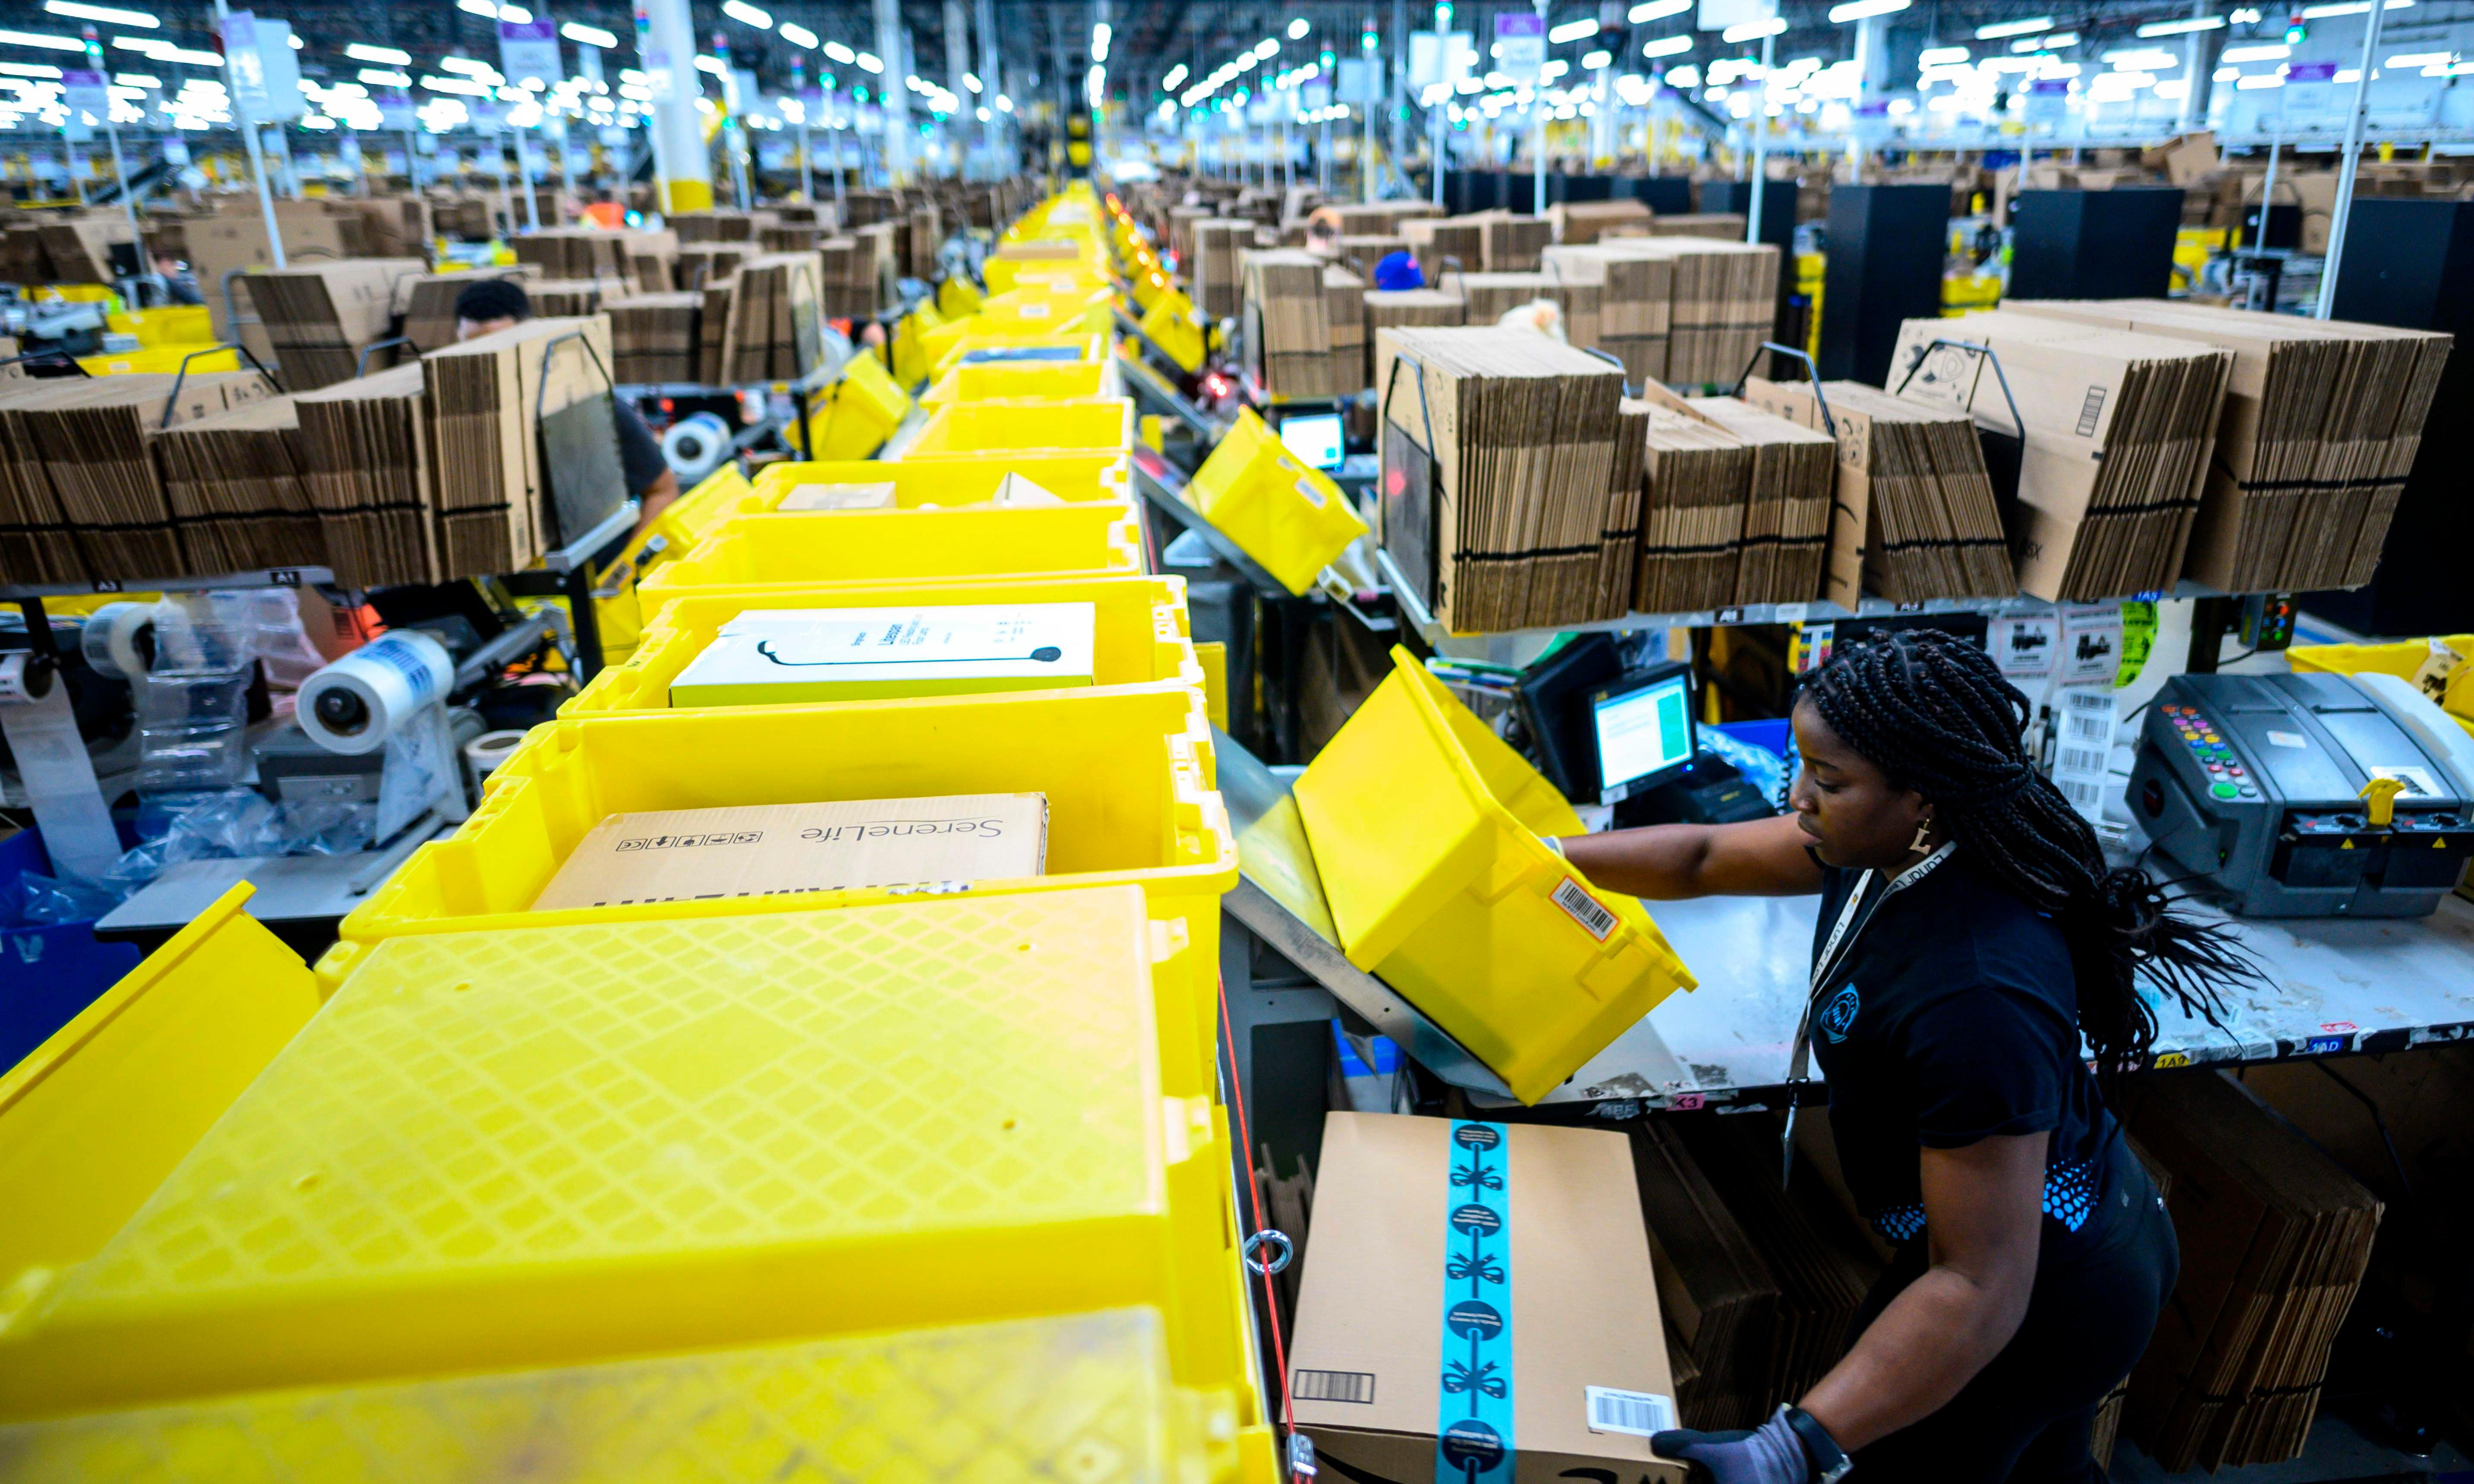 'Go back to work': outcry over deaths on Amazon's warehouse floor